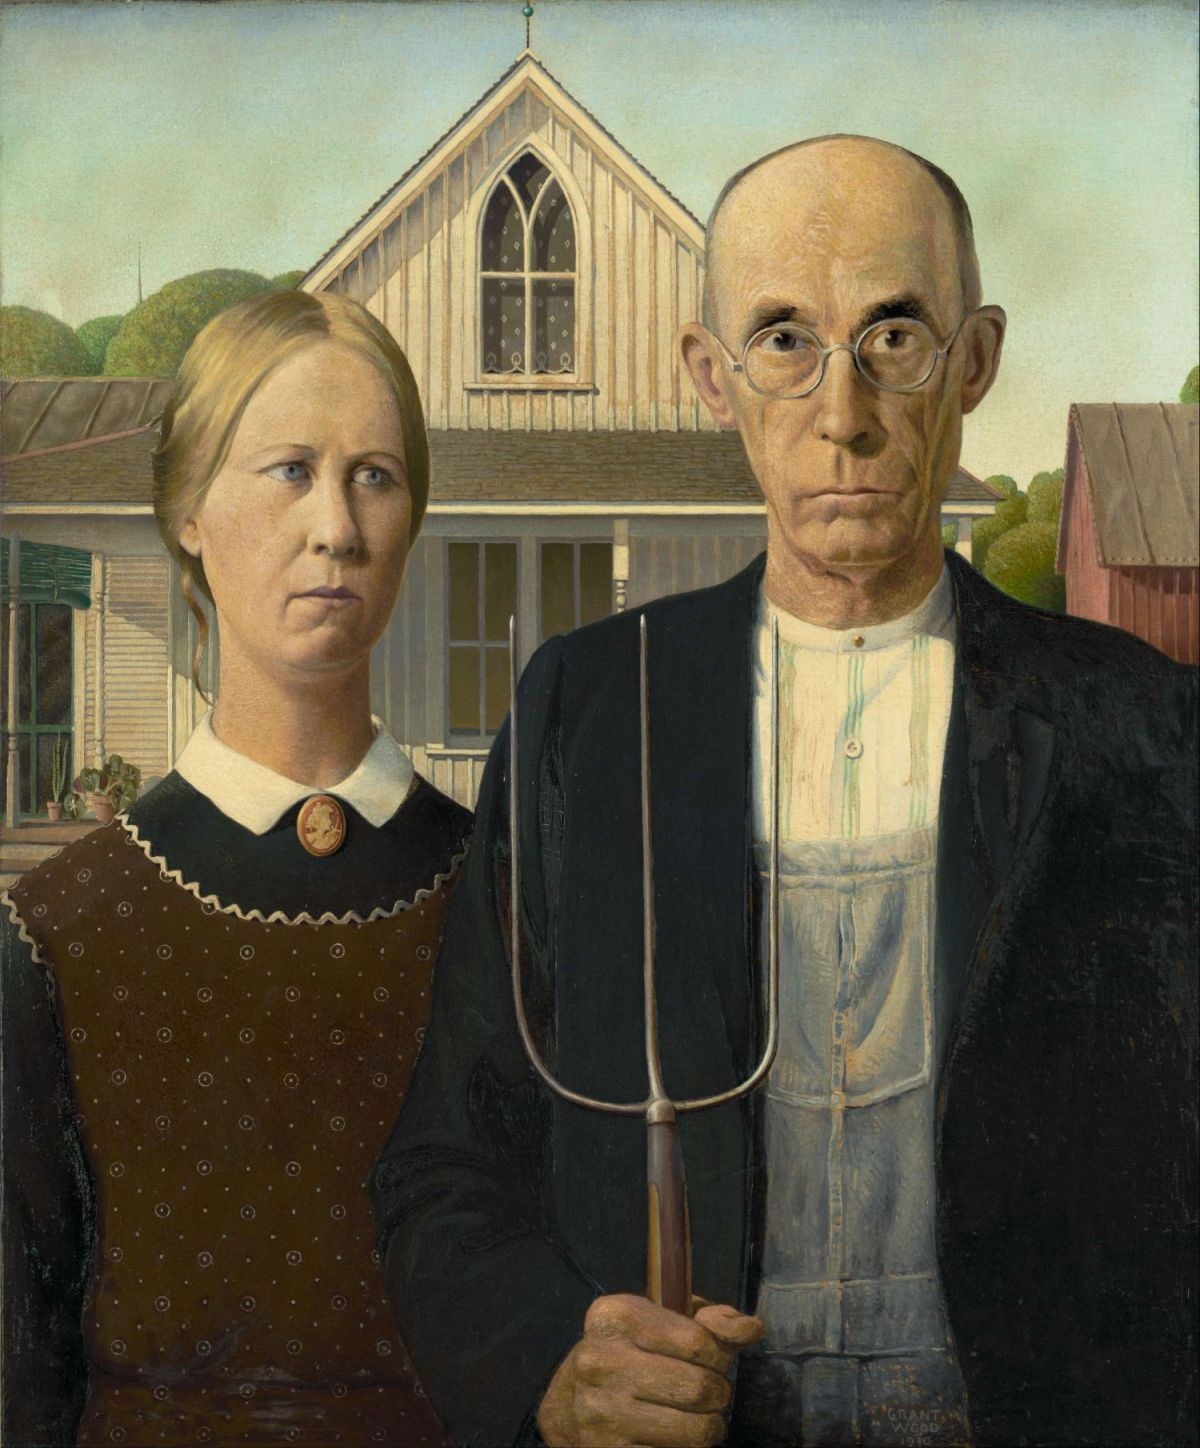 famous painting american gothic by grant wood